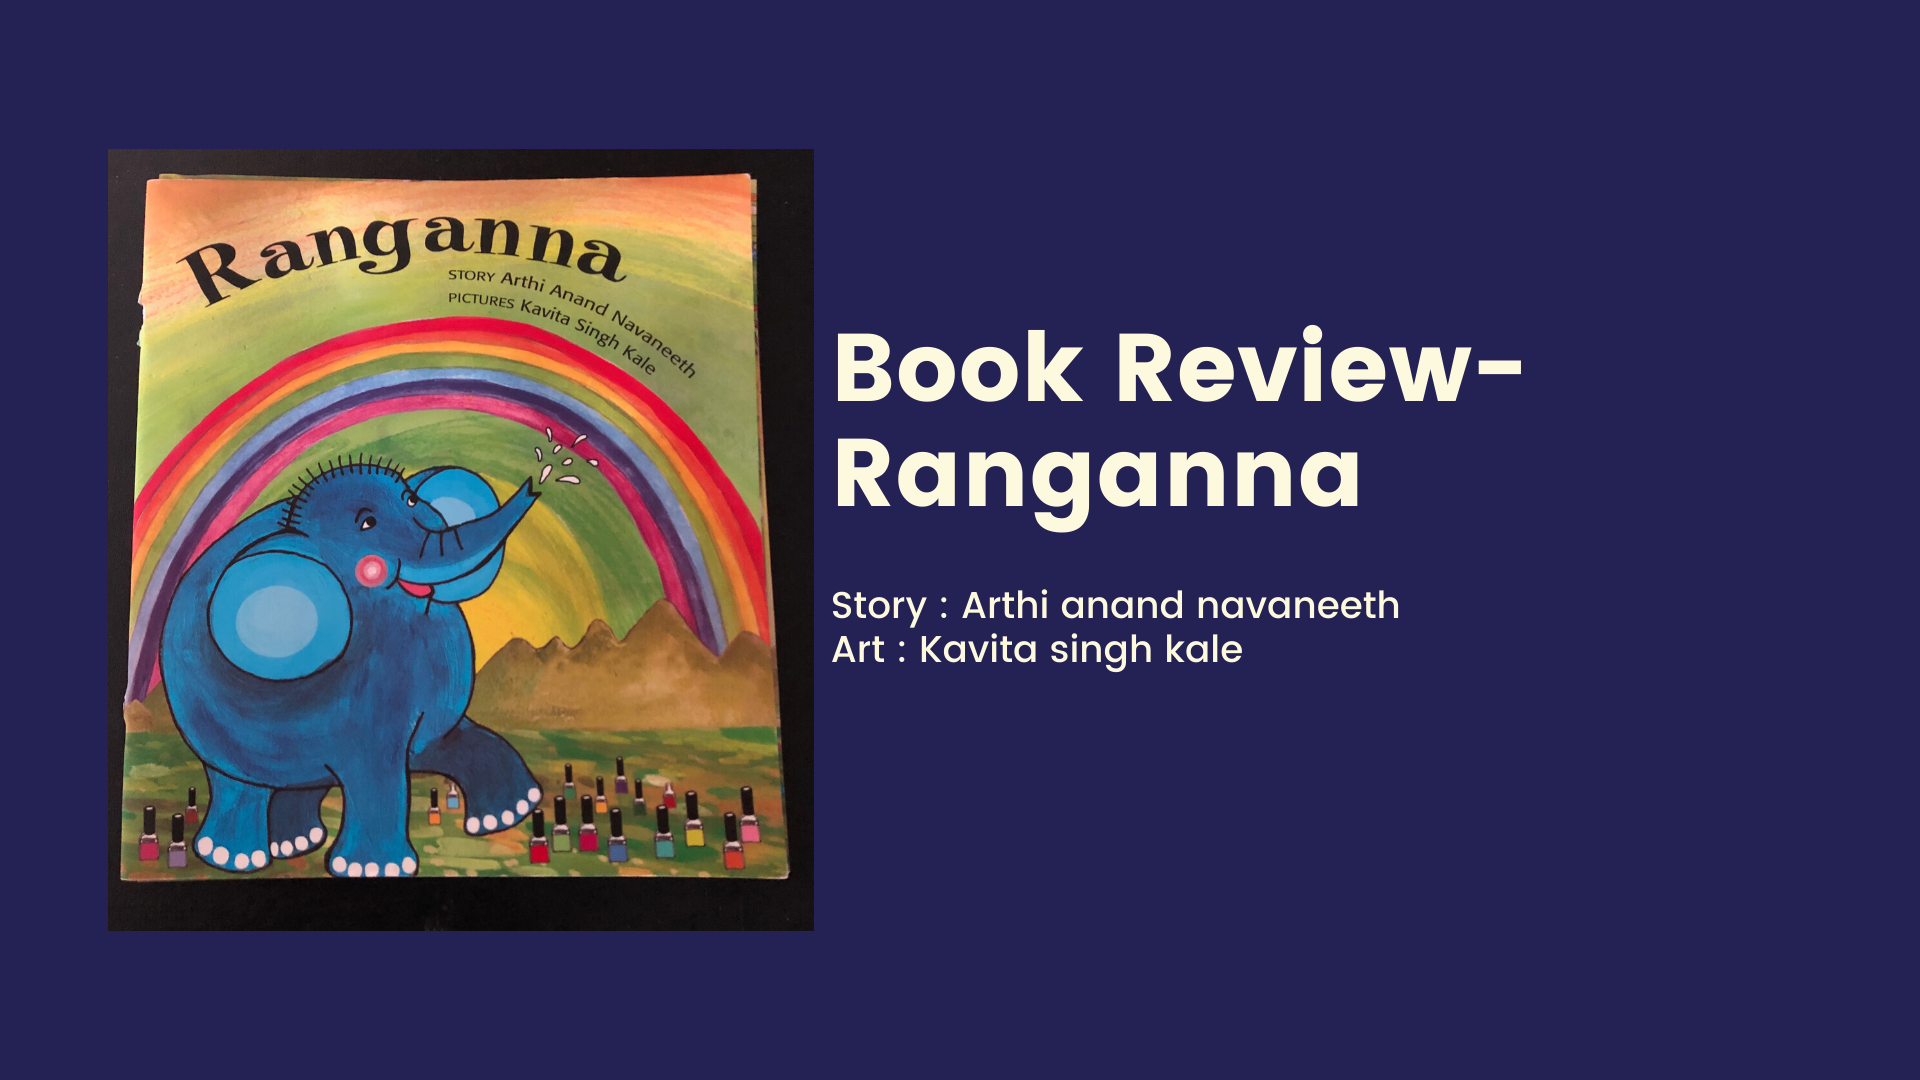 Book Review- Ranganna